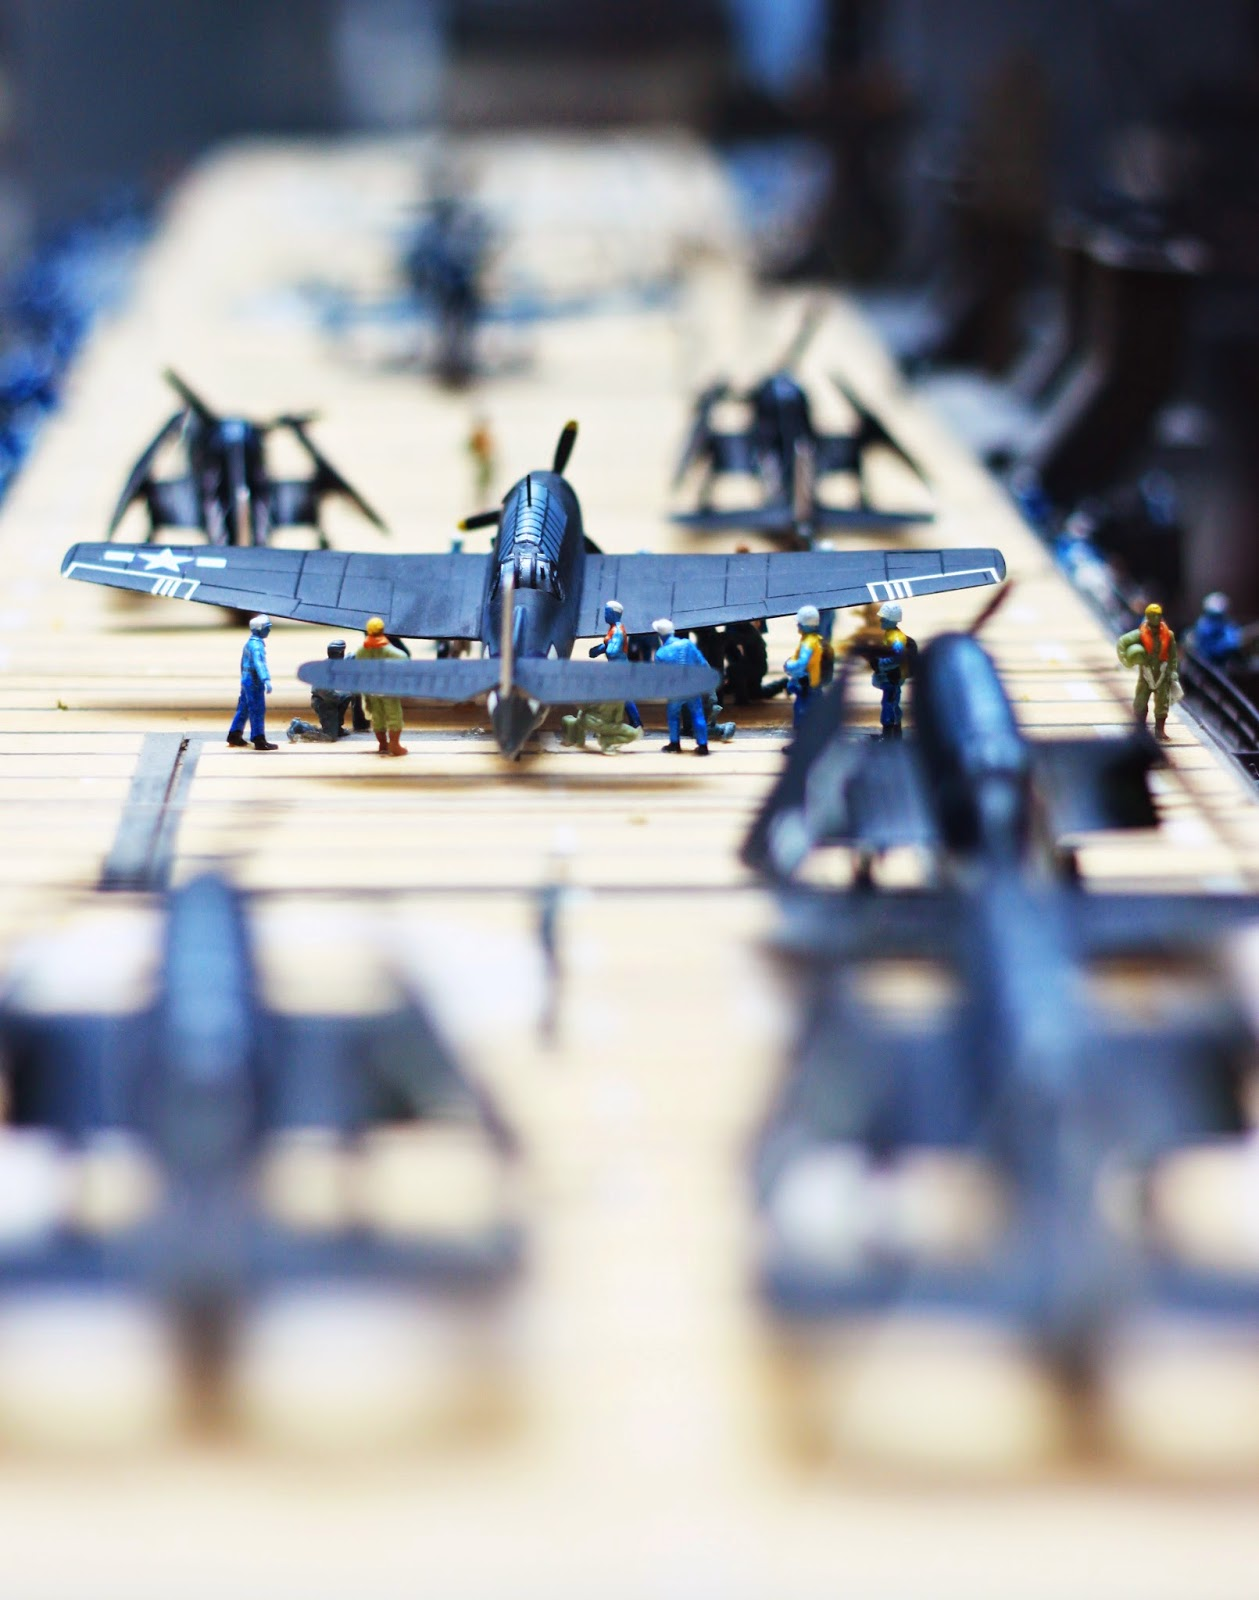 Pensacola NAS air craft carrier miniature